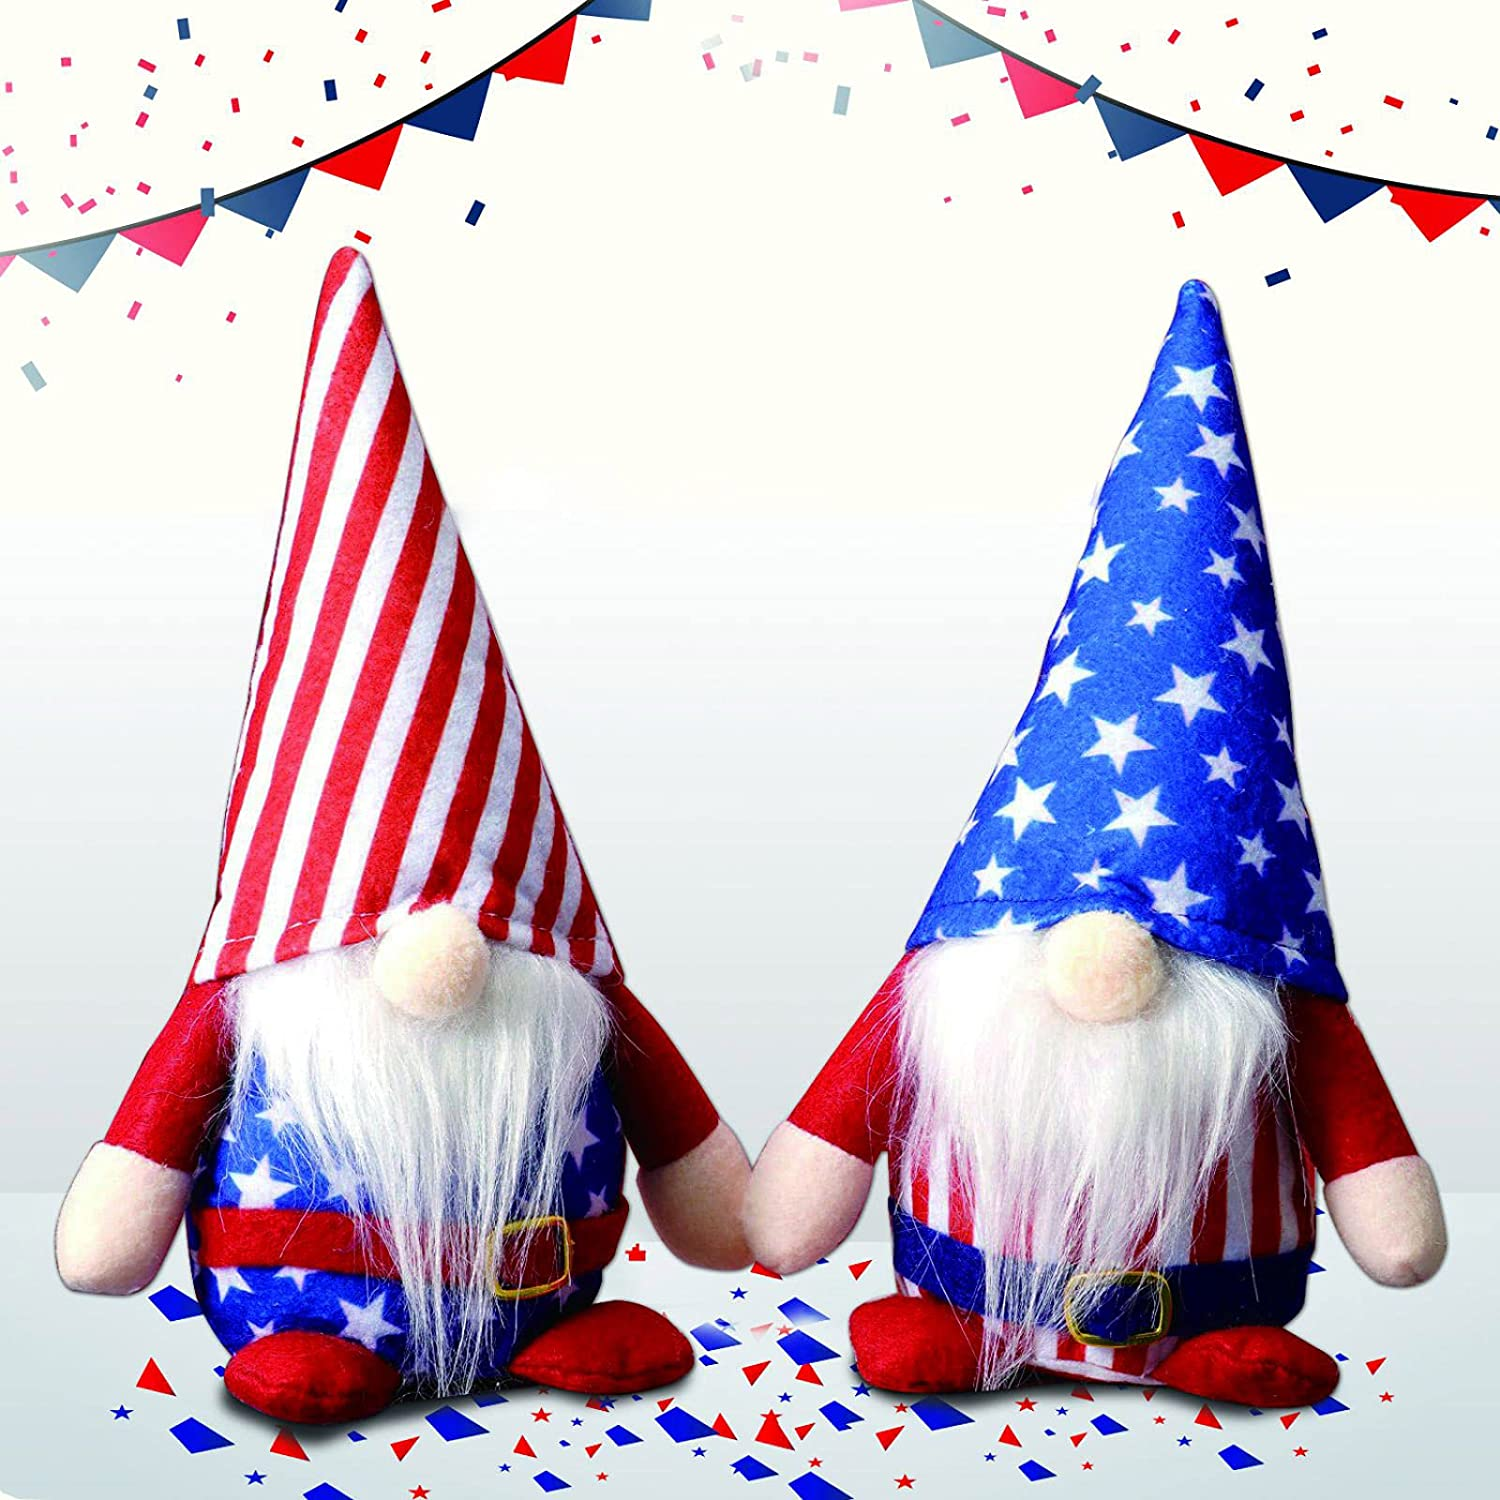 2Pcs 4th of July Patriotic Gnomes Plush Decorations - Handmade Couple Handmade Swedish Tomte Gnomes Ornaments for Independence Day Veterans Day Tabletop Decor, Fourth of July Party Home Decorations